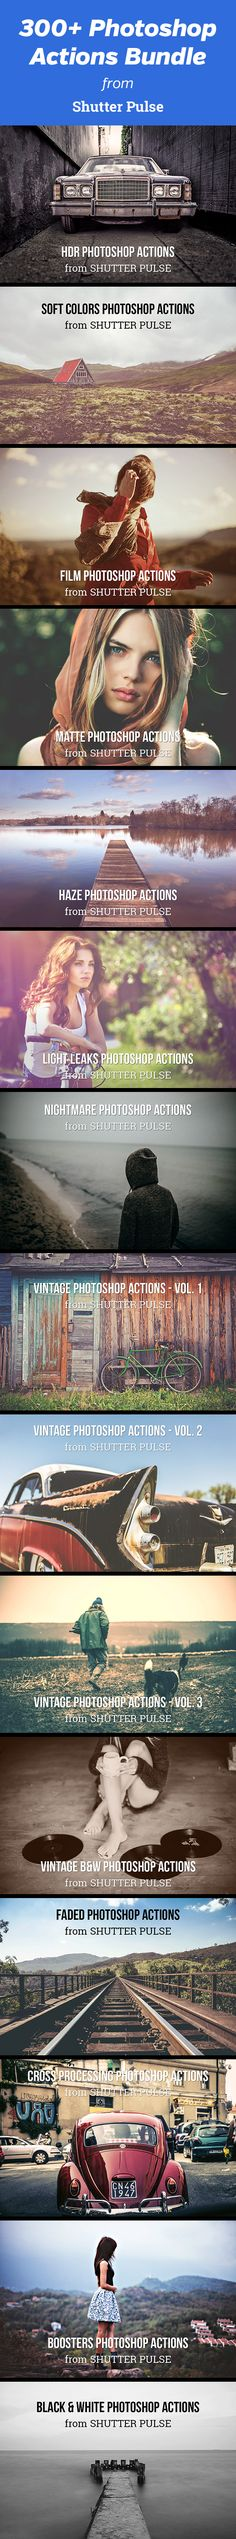 Transform Your Photography with Professional Photoshop Actions - get this set of more than 300 high-quality Photoshop actions from ShutterPulse.com